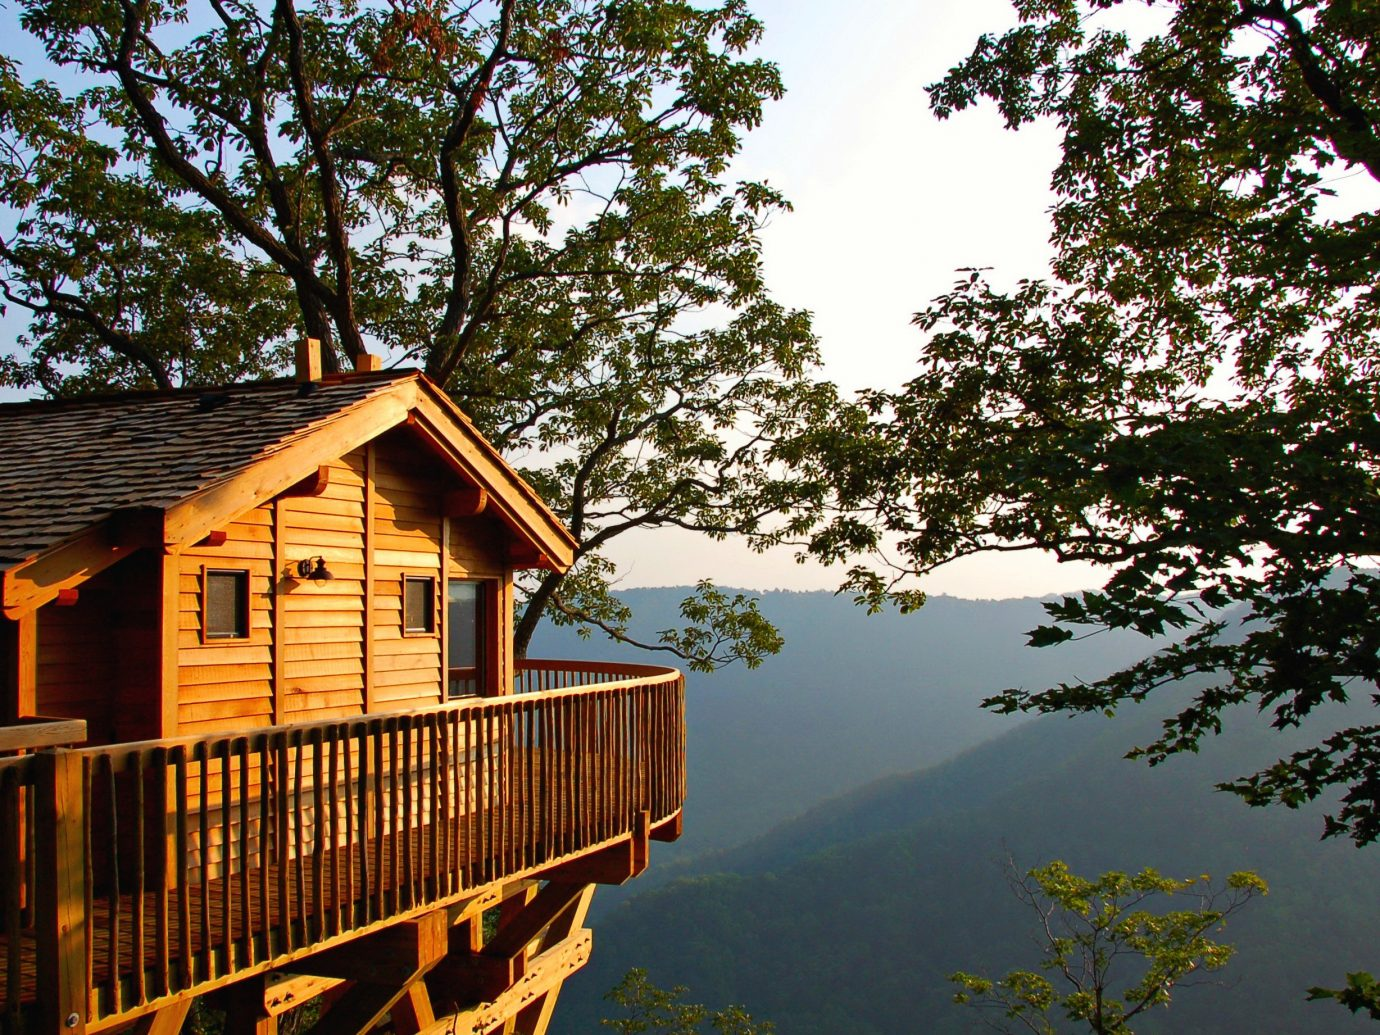 Country Hotels Nature Outdoors Scenic views tree outdoor house home estate cottage